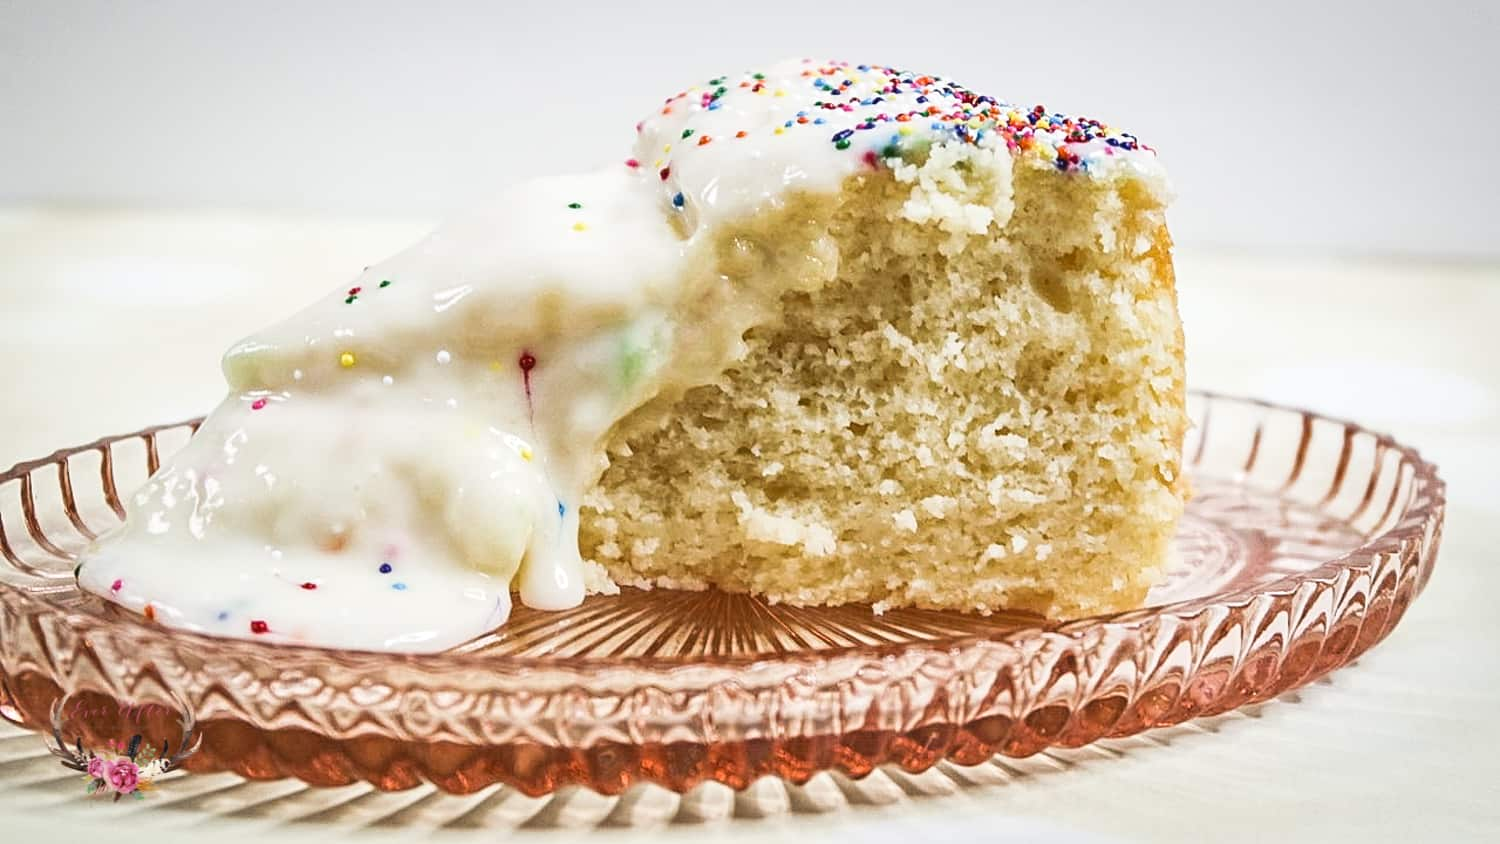 How to Make Ricotta Cake with a Cake Mix